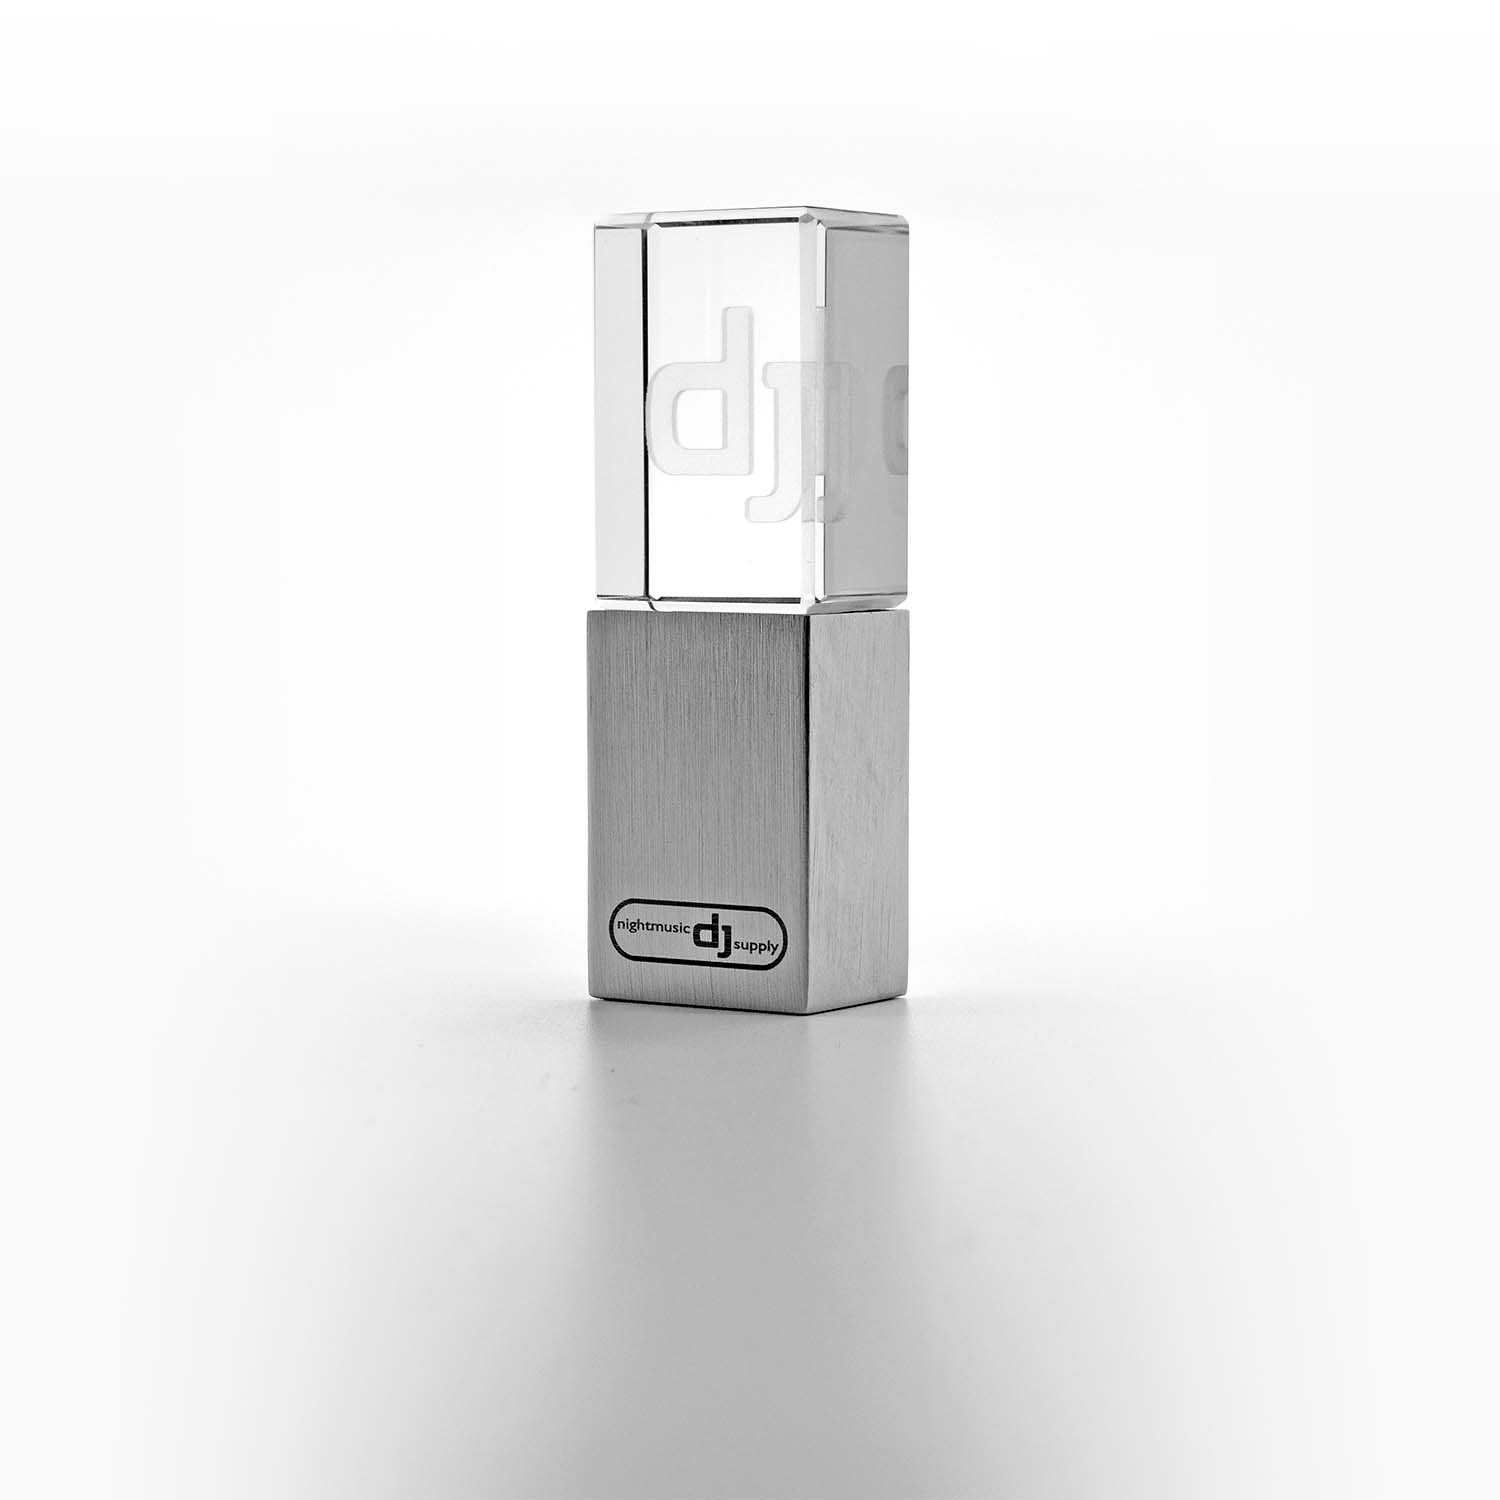 Premium Crystal DJ Stick V2 - USB 3.0 Flash Drive